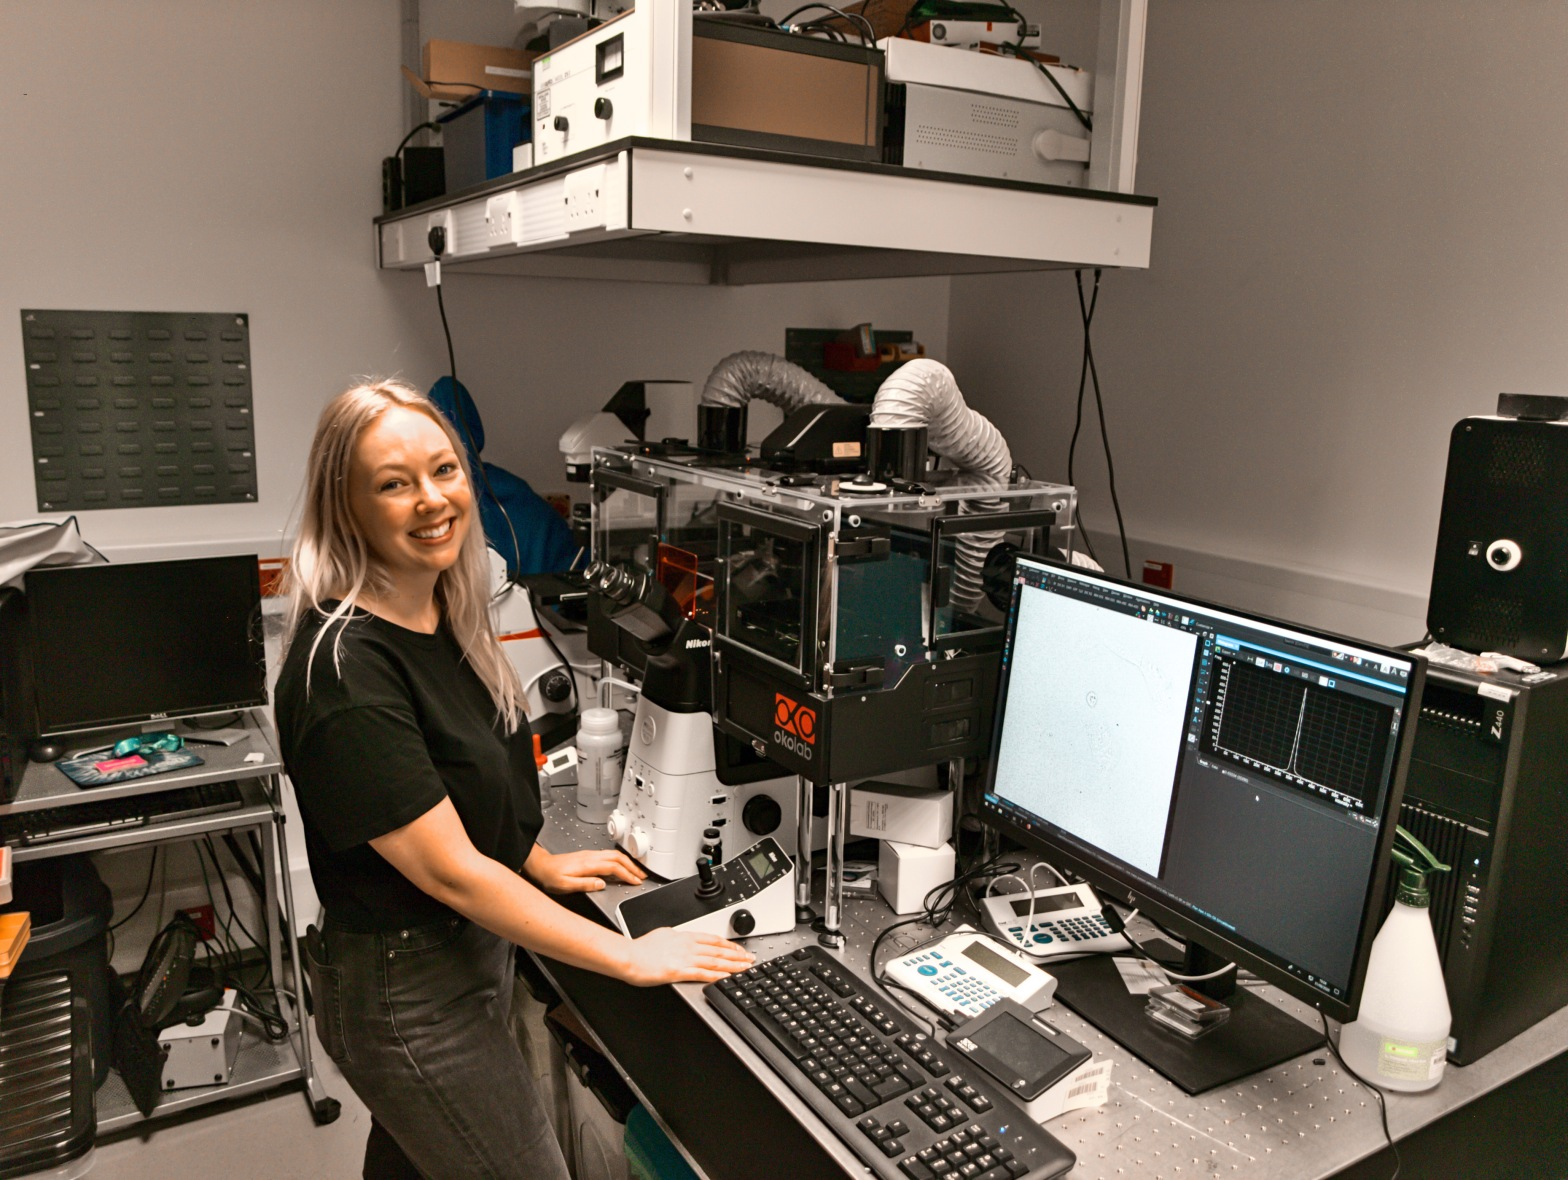 Katrina Wesencraft in a lab with a microscope